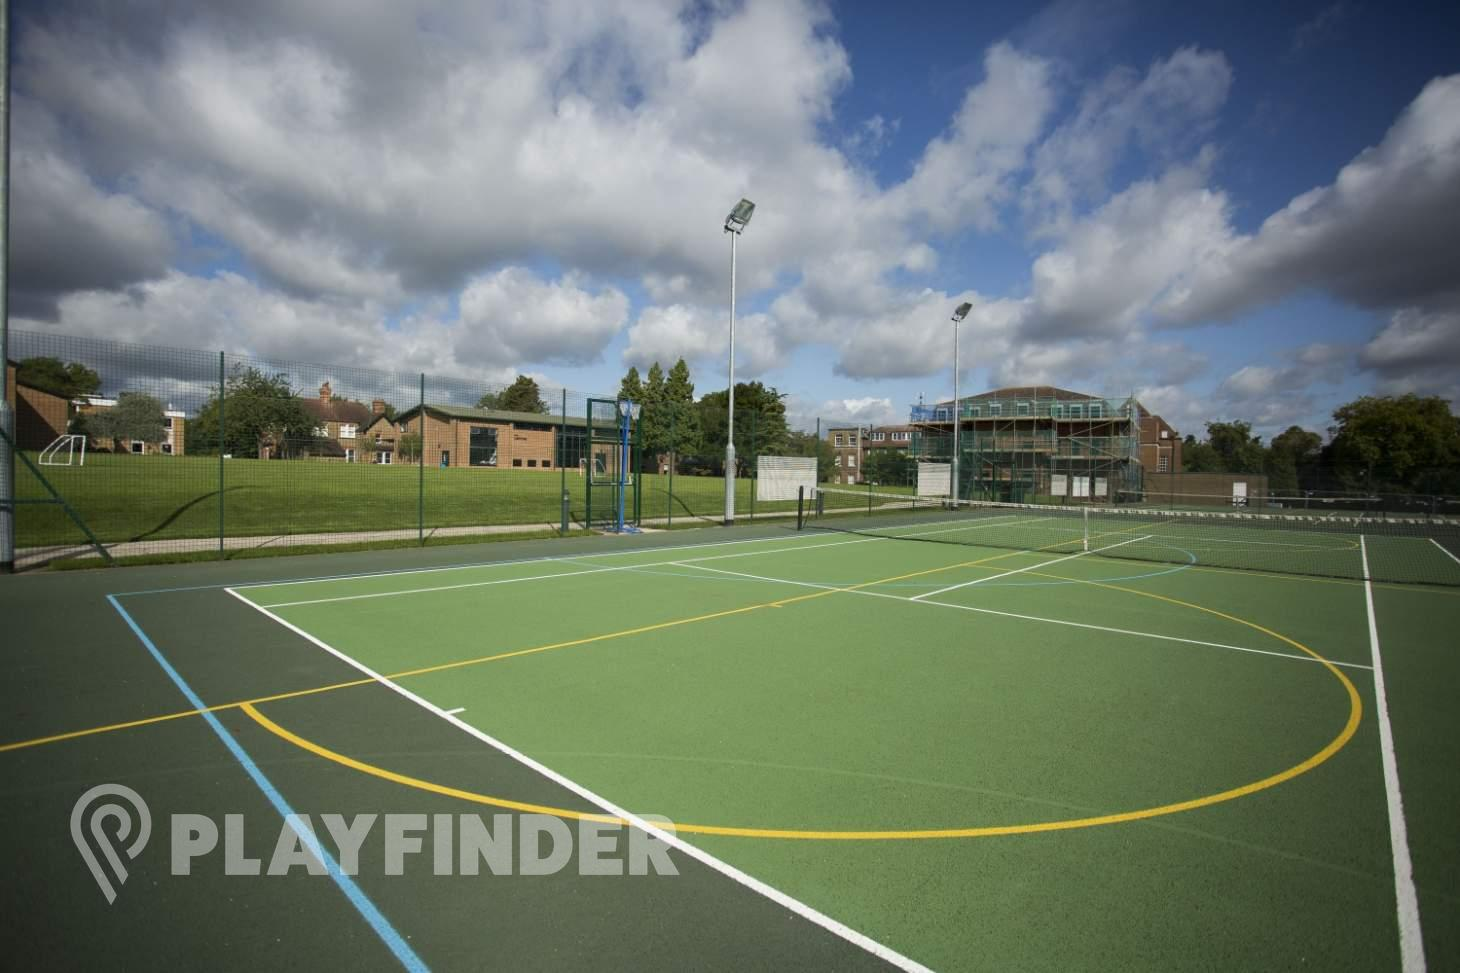 St Helen's Sports Complex Outdoor | Hard (macadam) netball court